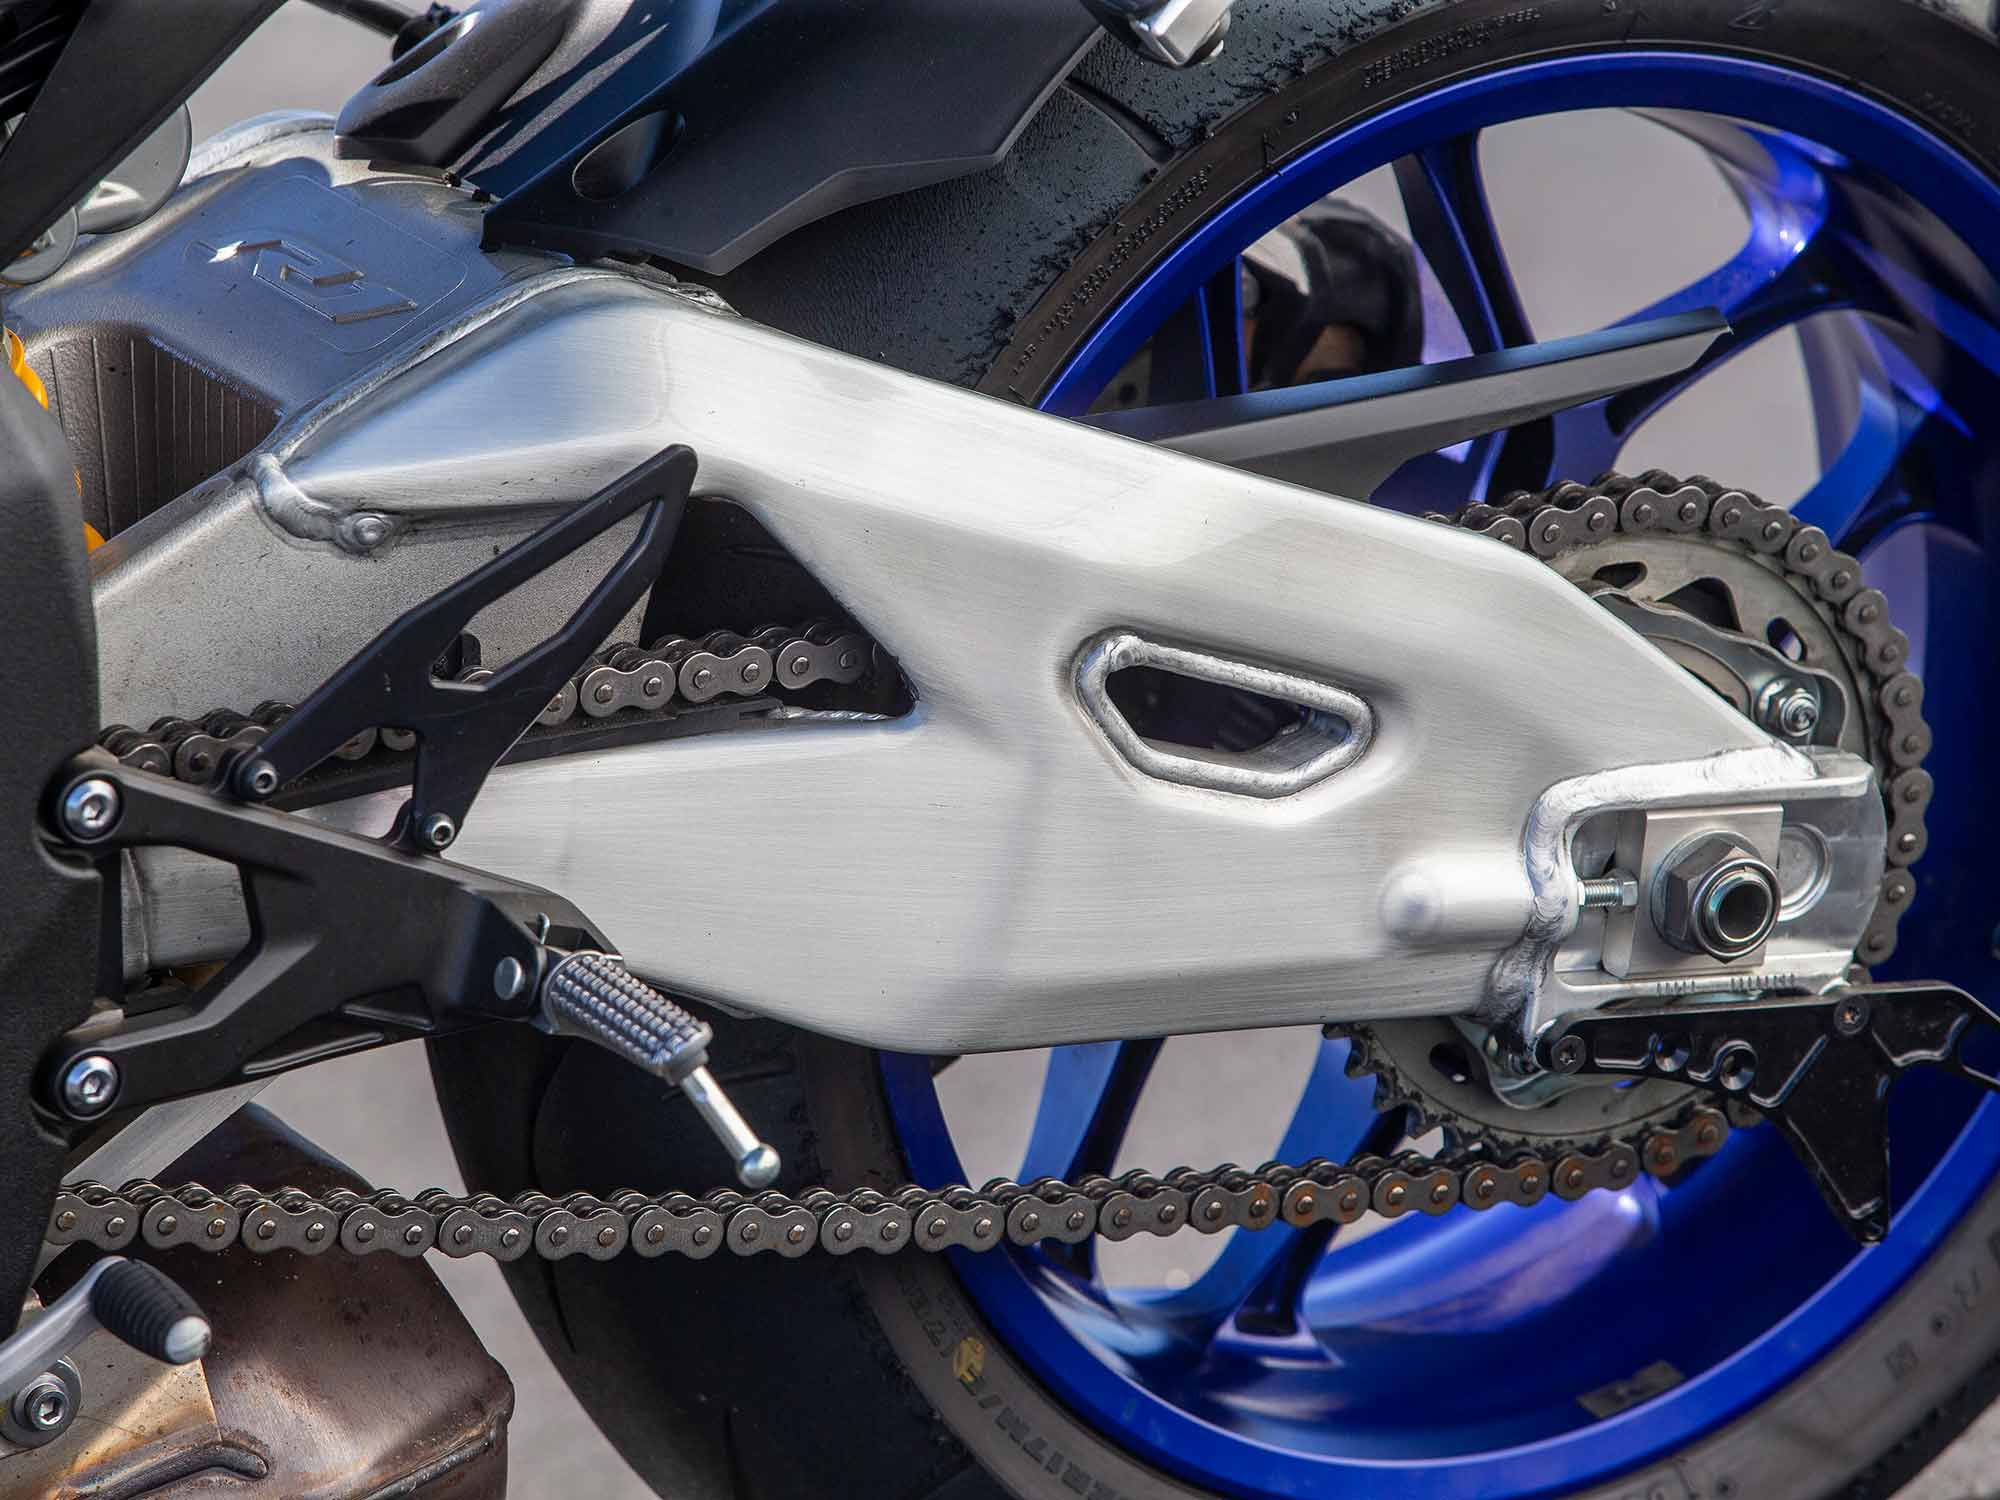 The YZF-R1M stands out with its polished aluminum swingarm versus the standard model's painted piece.